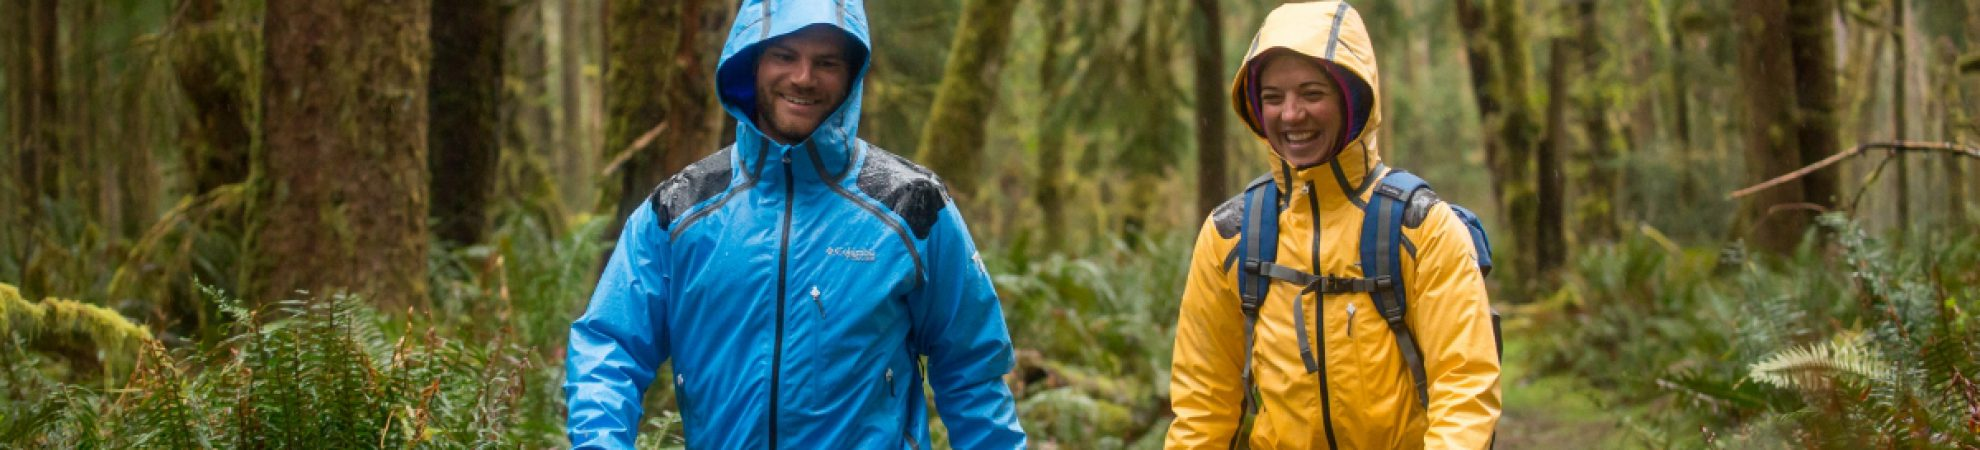 Waterproof jackets: 6 of the Best